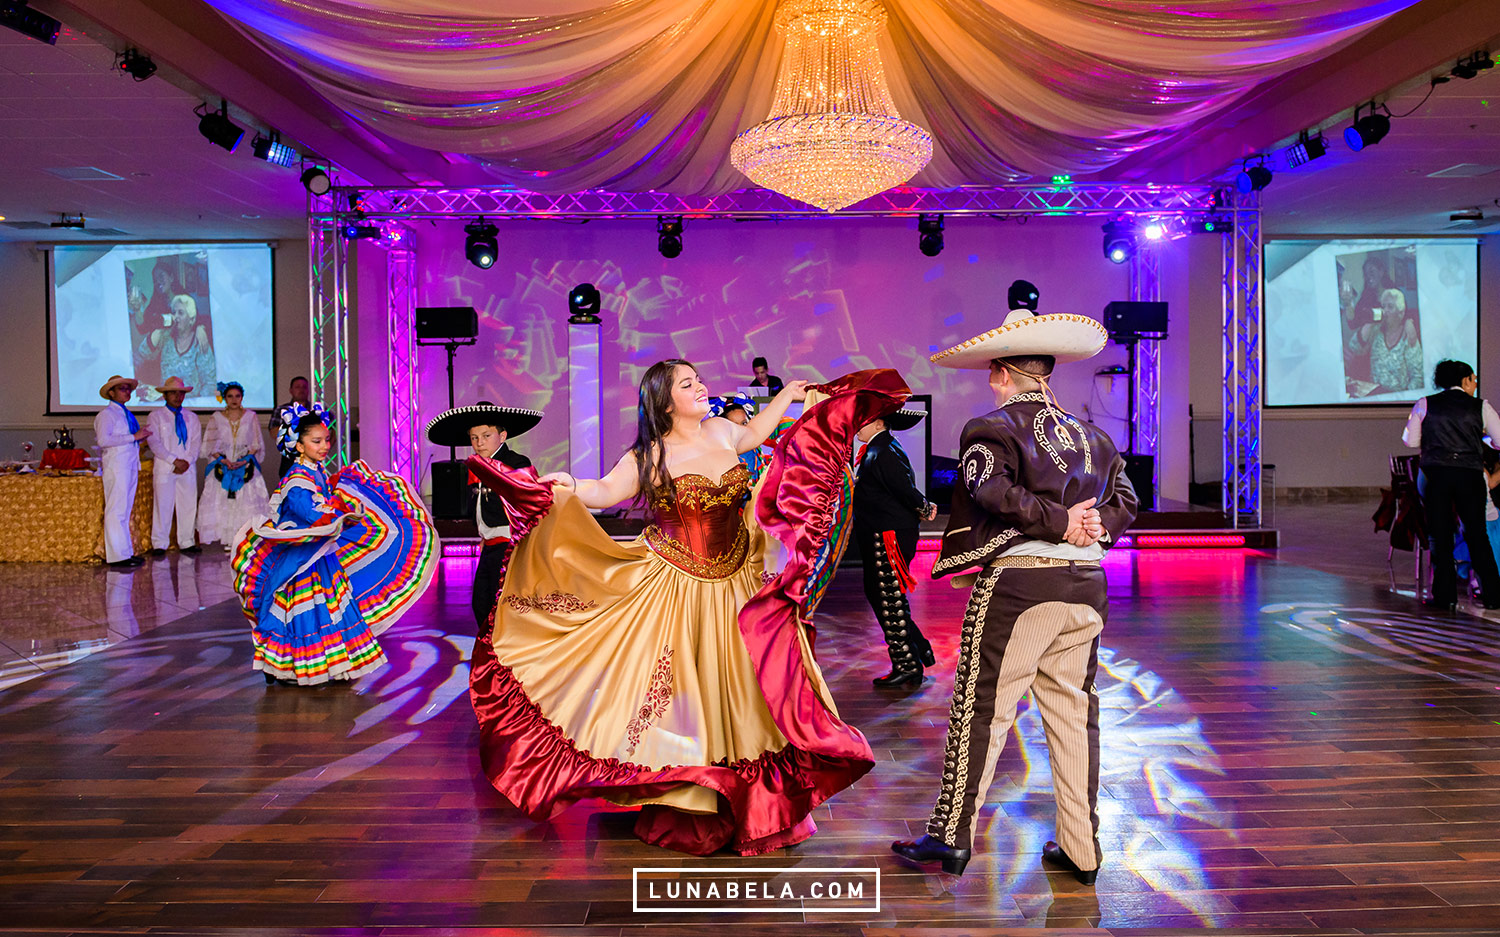 fotografo-de-quinceanera-lunabela-photography-houston-photographer-abygail5.jpg